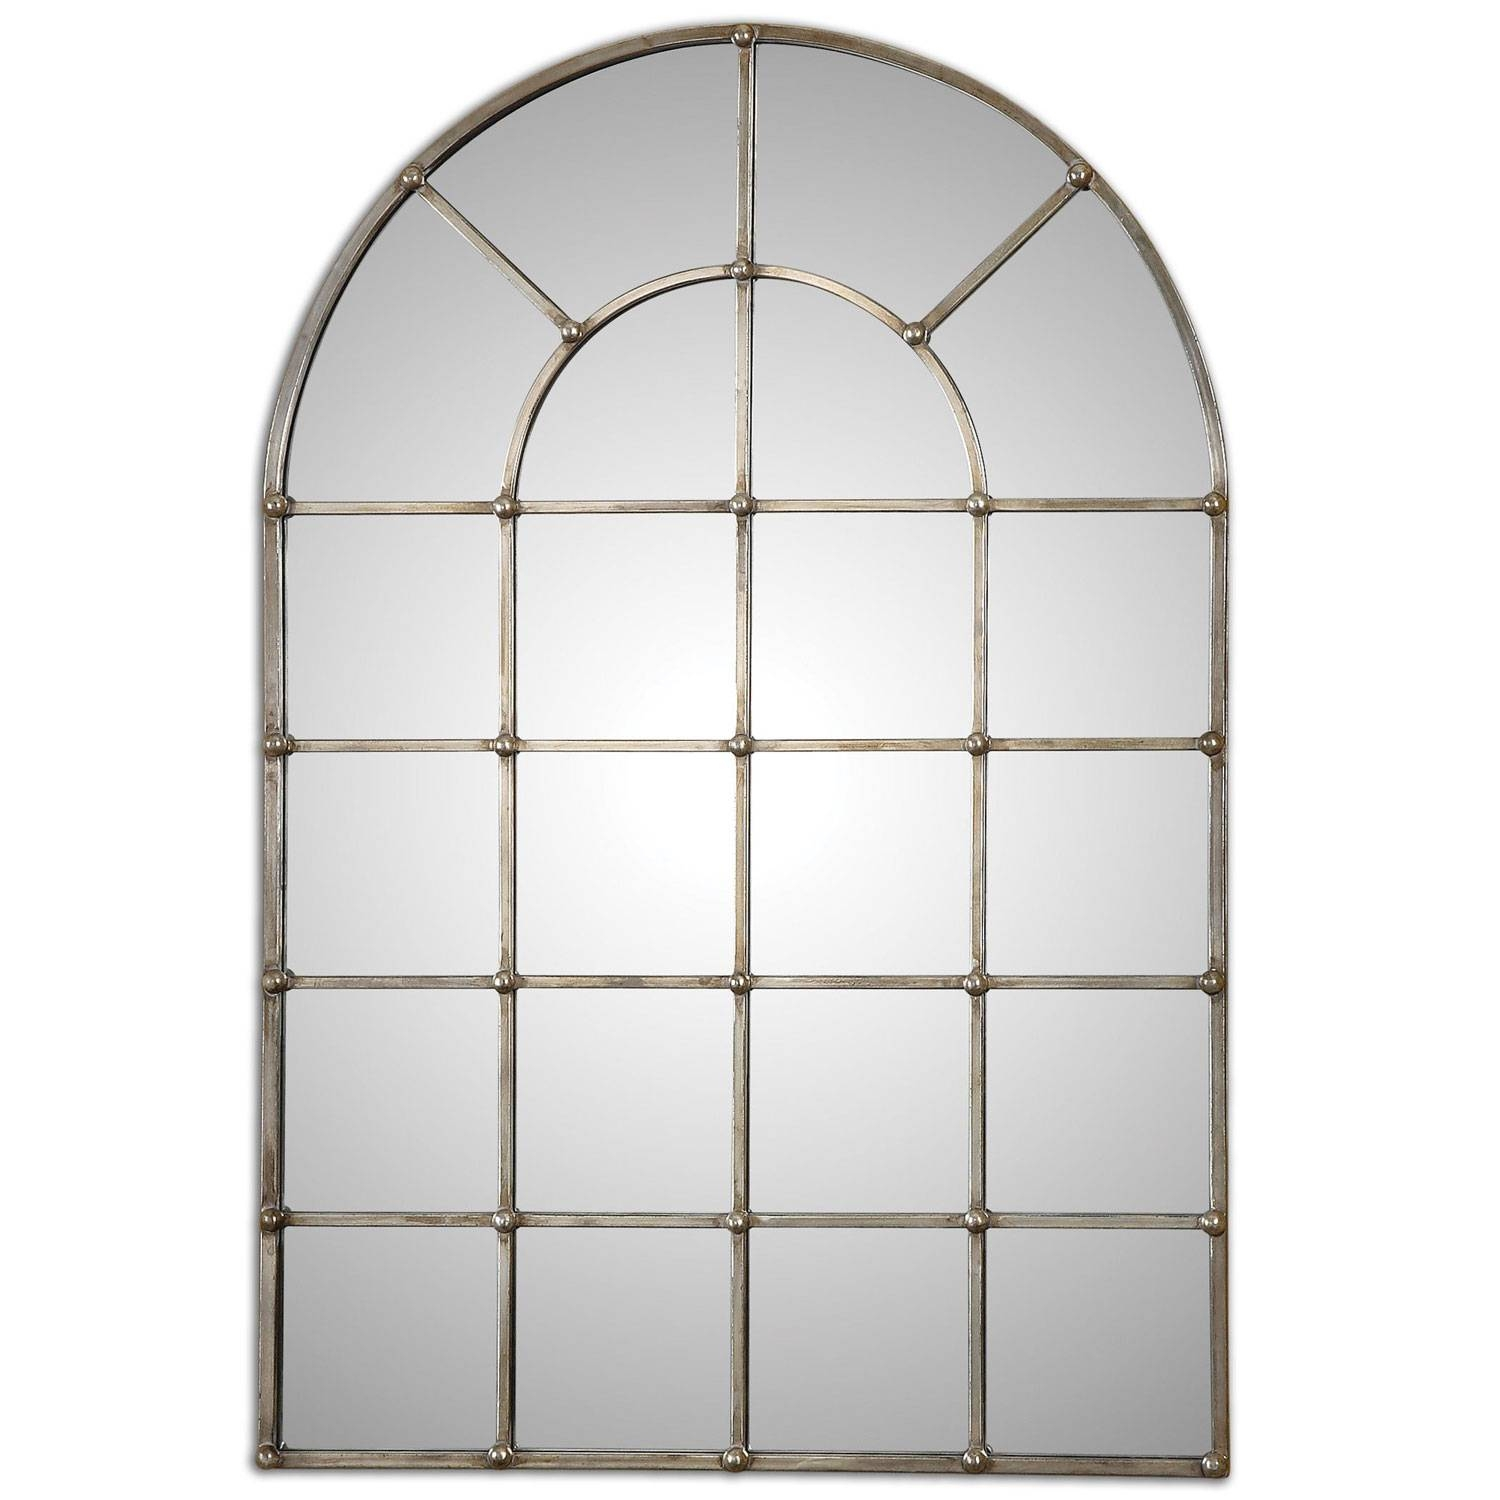 Barwell Forged Metal With Oxidized Plated Silver Arch Window pertaining to Window Arch Mirrors (Image 8 of 25)